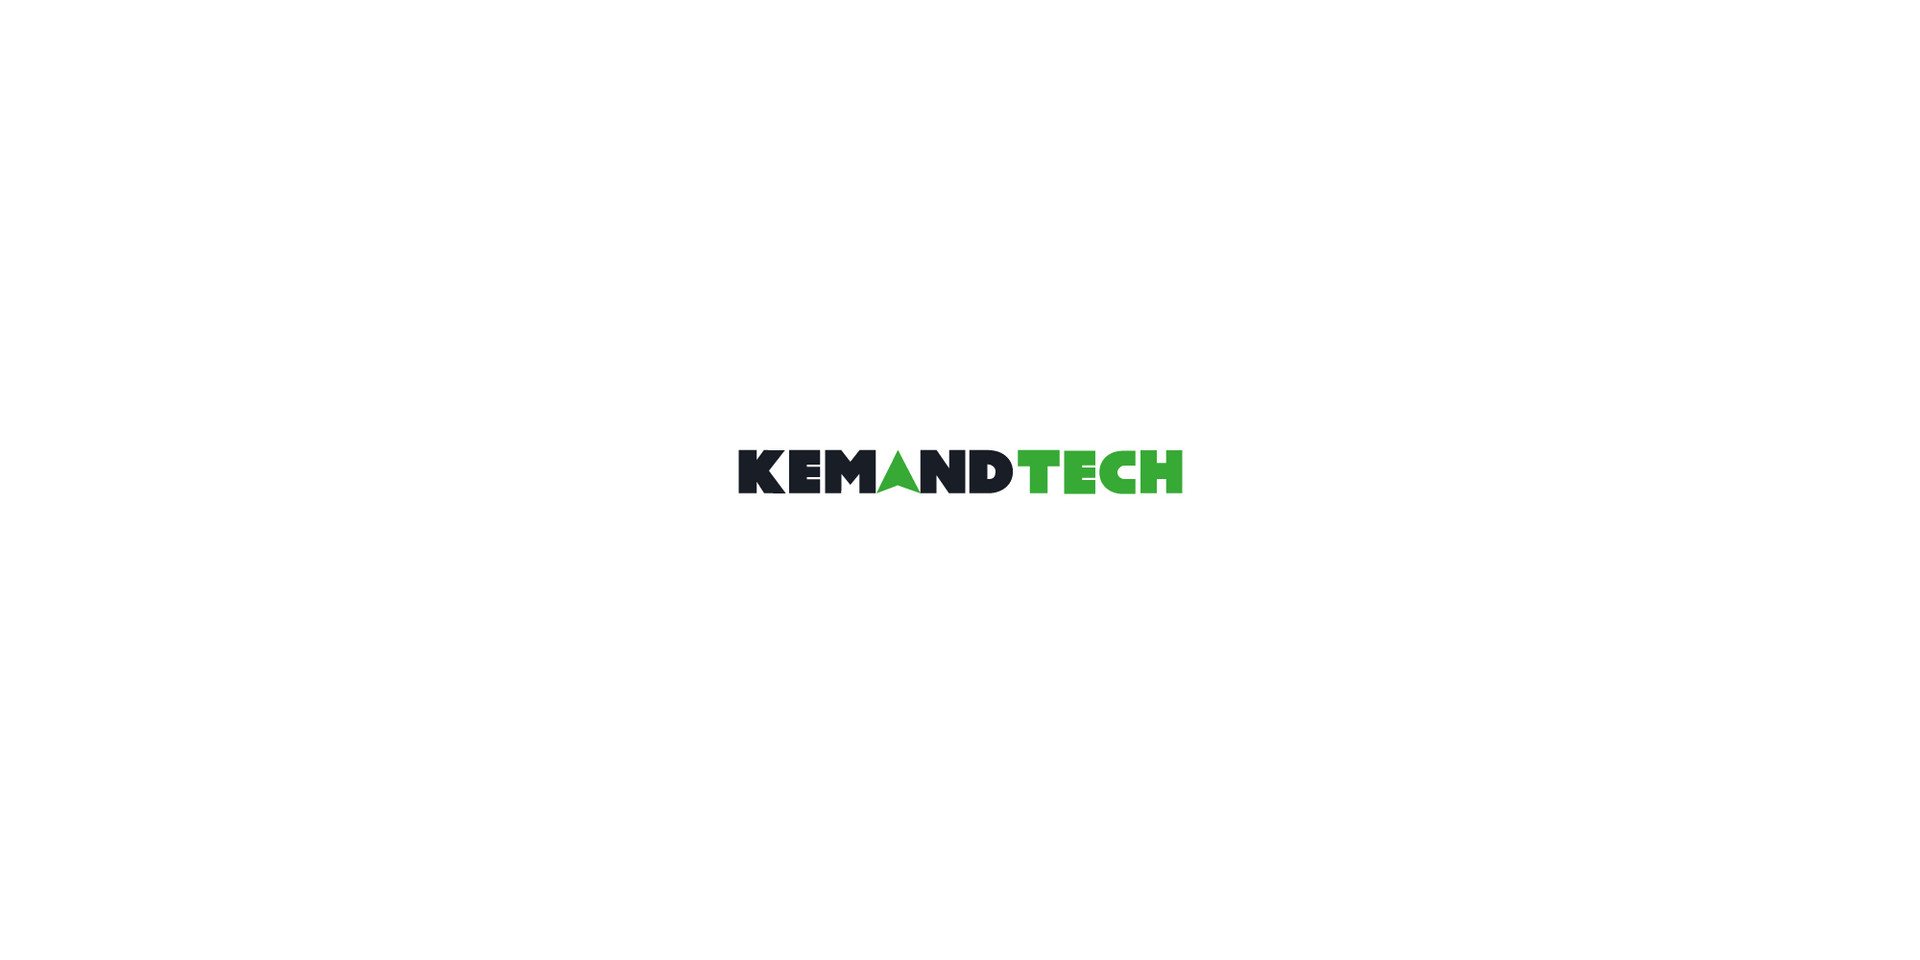 Kemand Tech